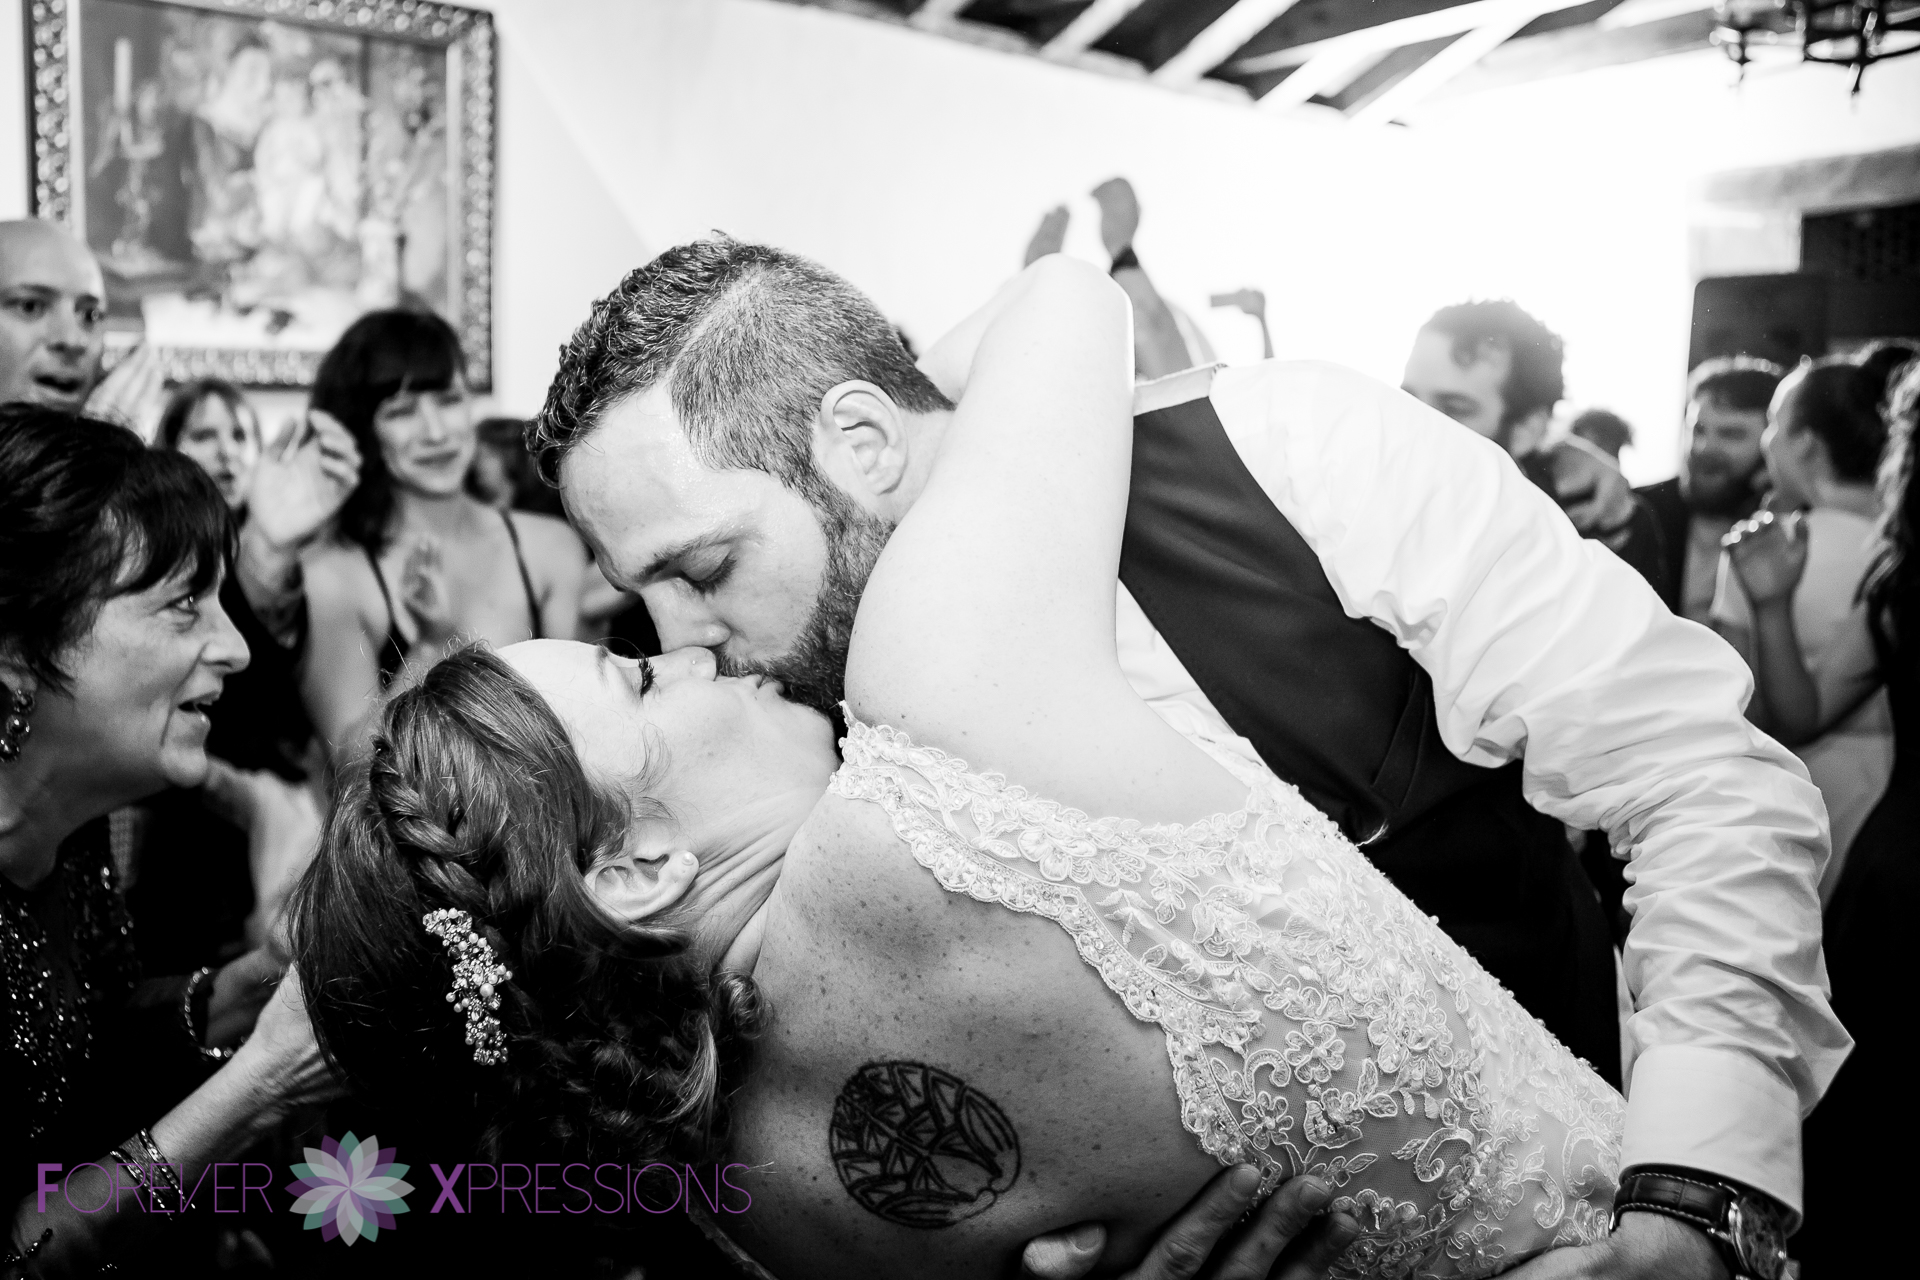 Forever_Xpressions_Wedding_Photography_Winterpark_Casa_Feliz-0955